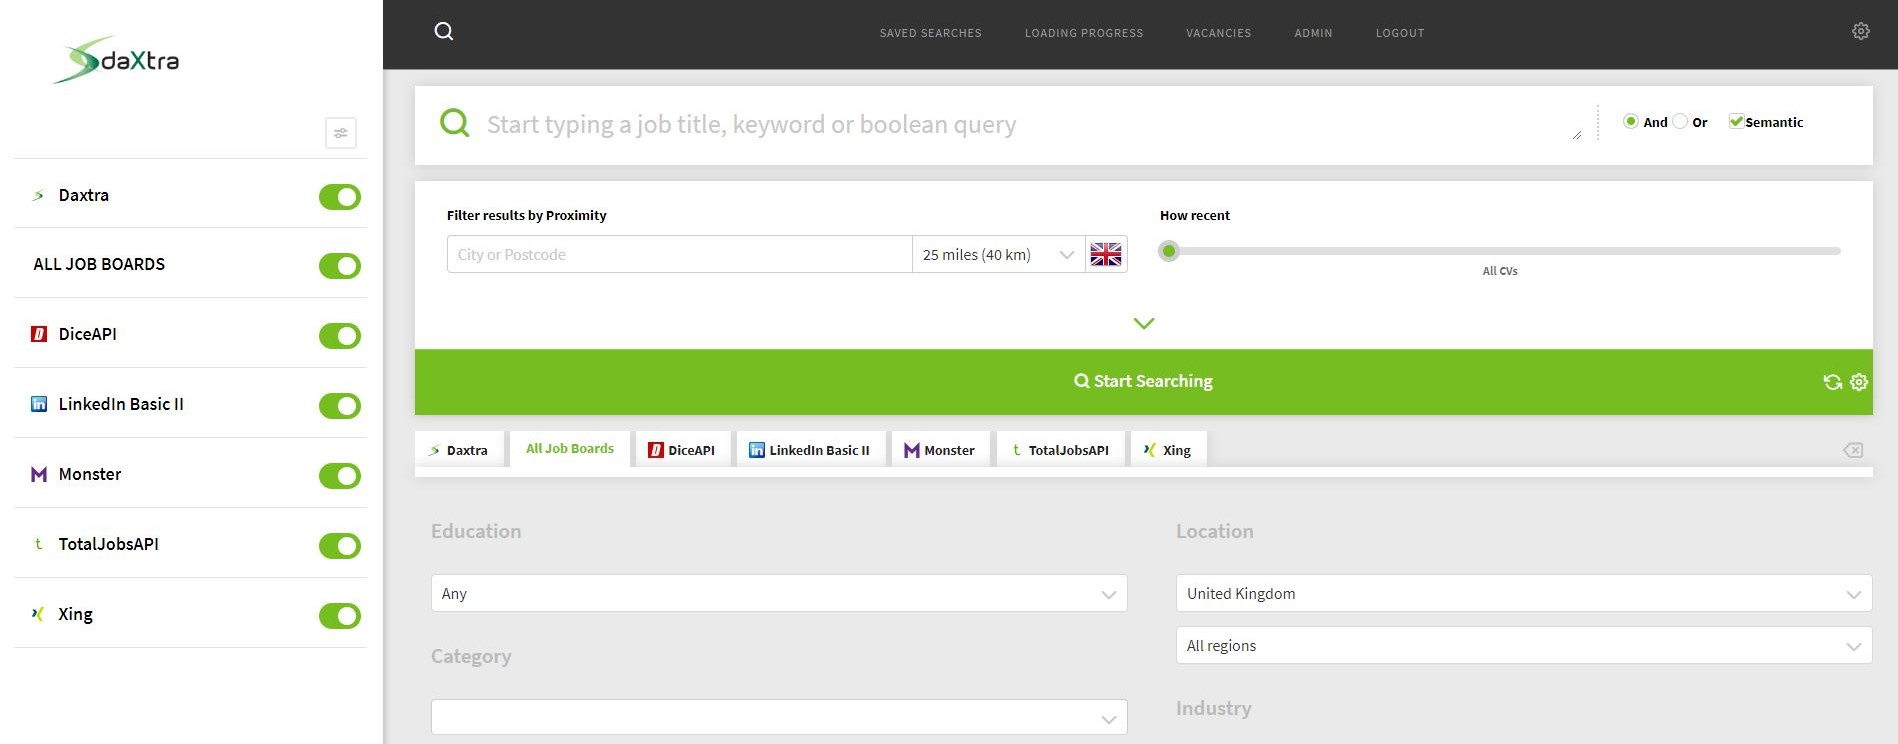 Search for candidates using the advanced search functionality